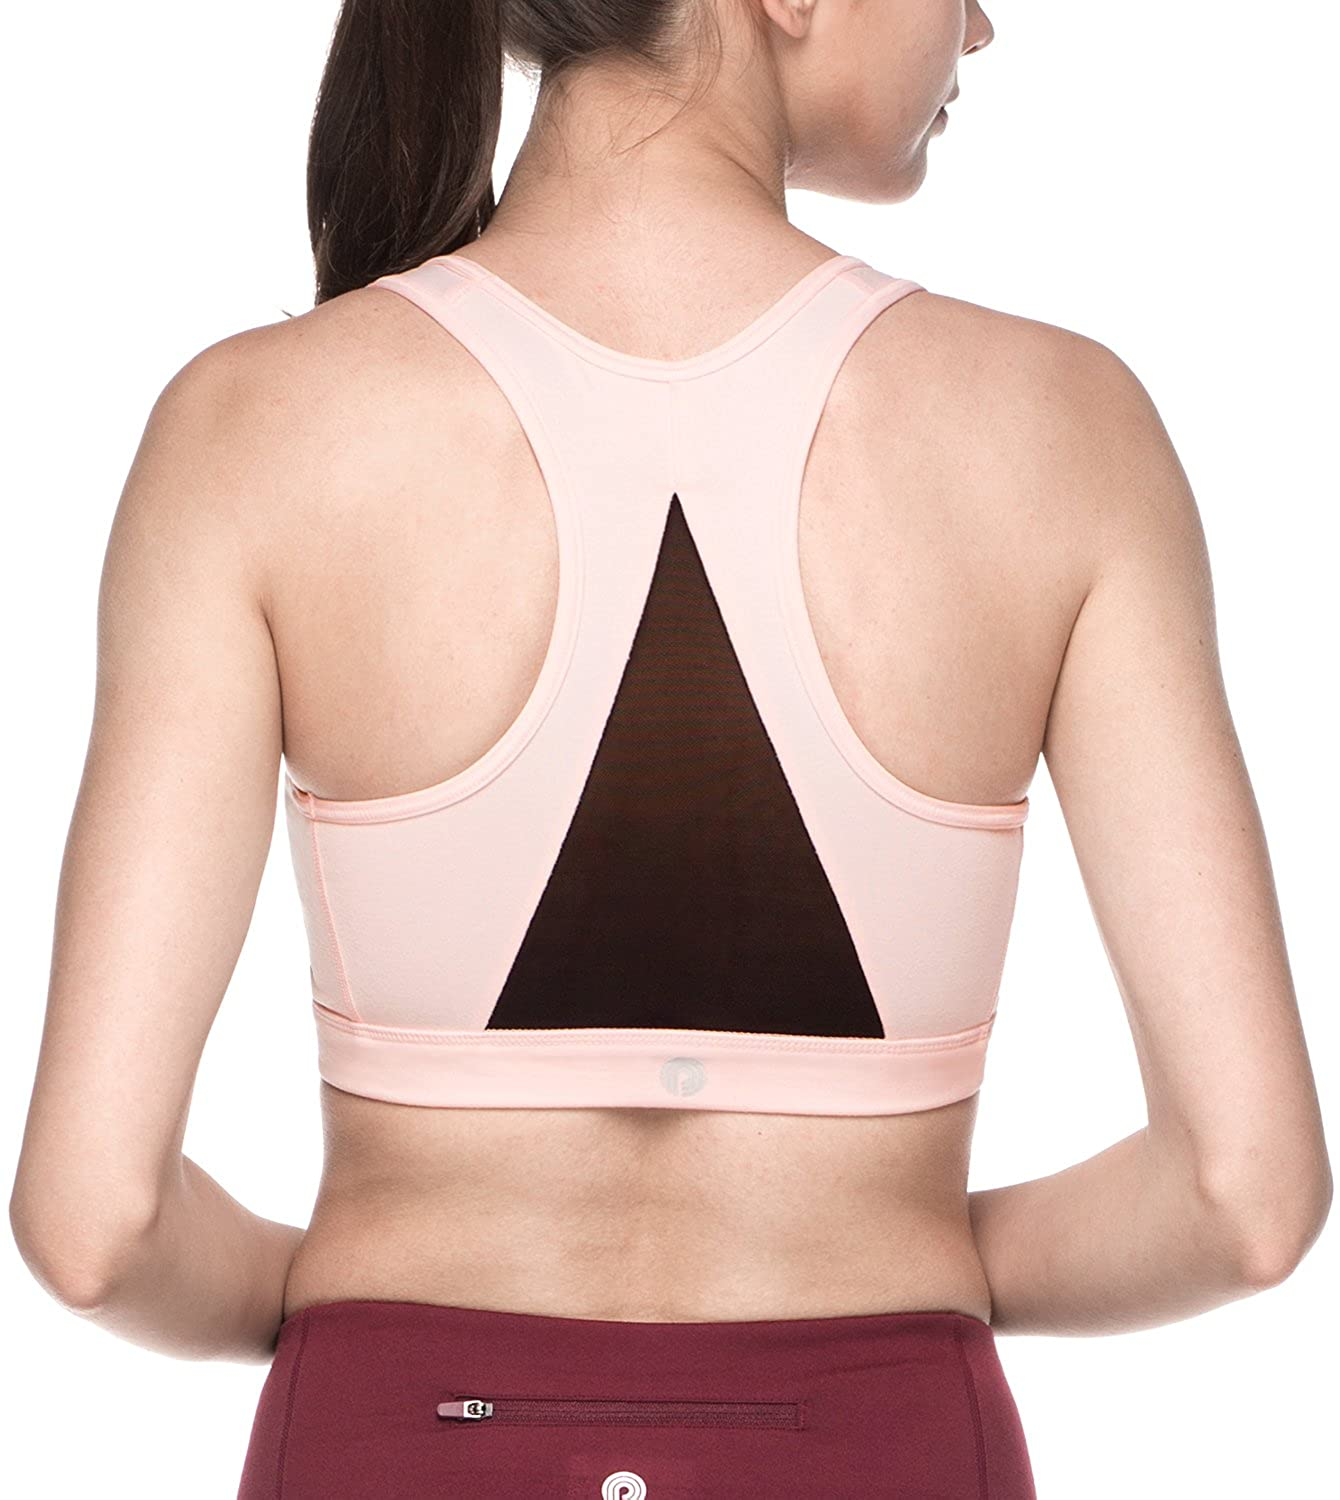 LAPASA Womens Sports Bra. Removable Pads, Extra Breathable, Racerback, Mid-Impact Support (for Yoga, Workout, Running) L28